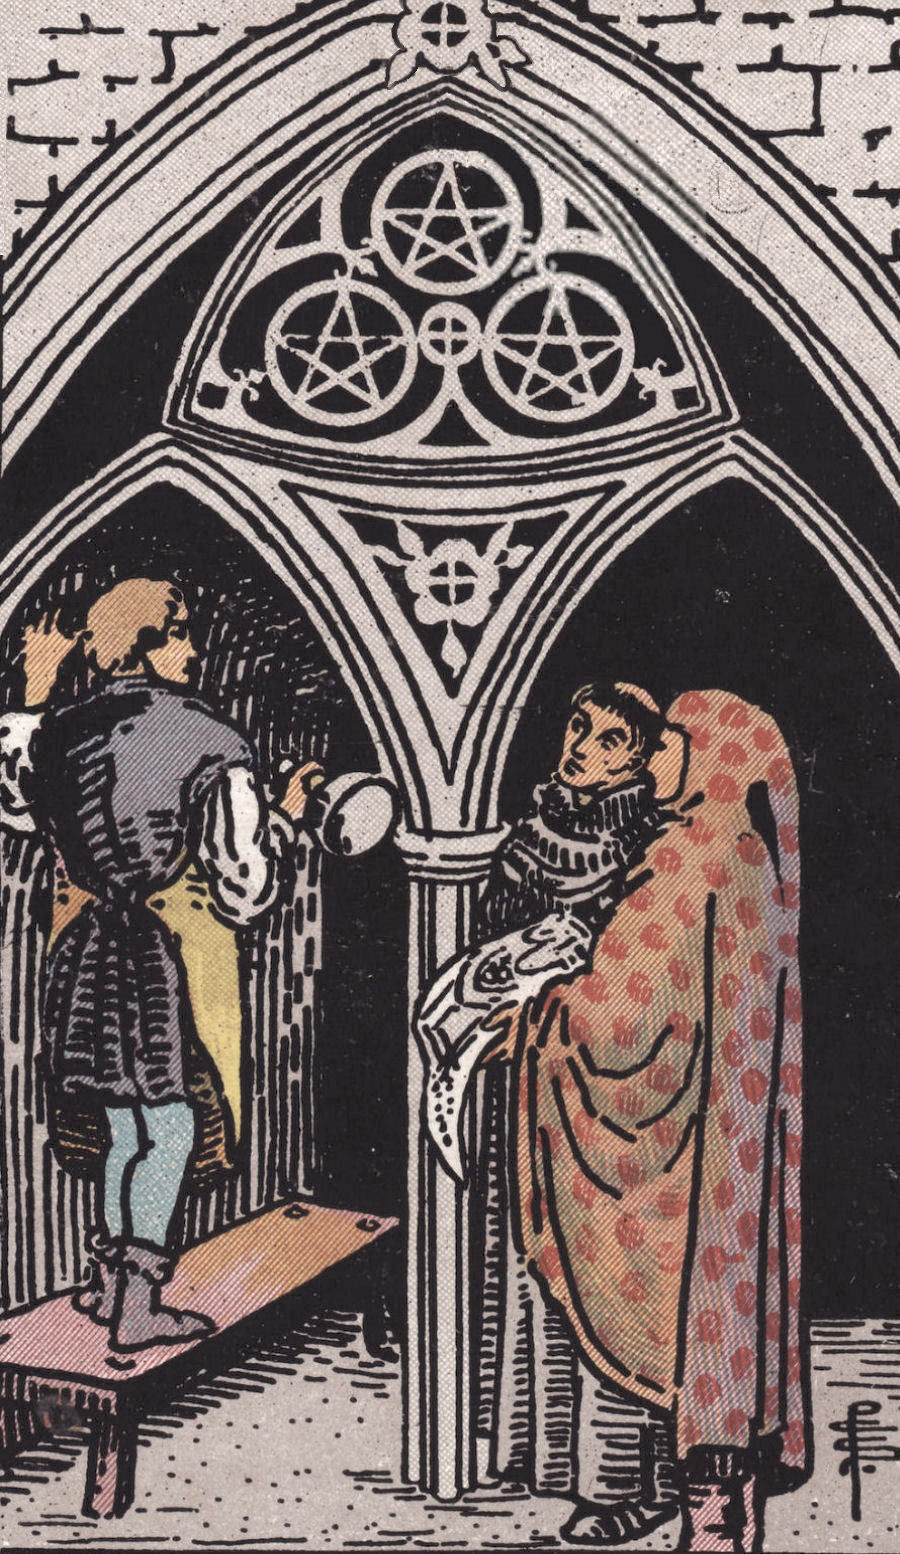 Rider Waite Smith Three of Pentacles Tarot Card Meaning